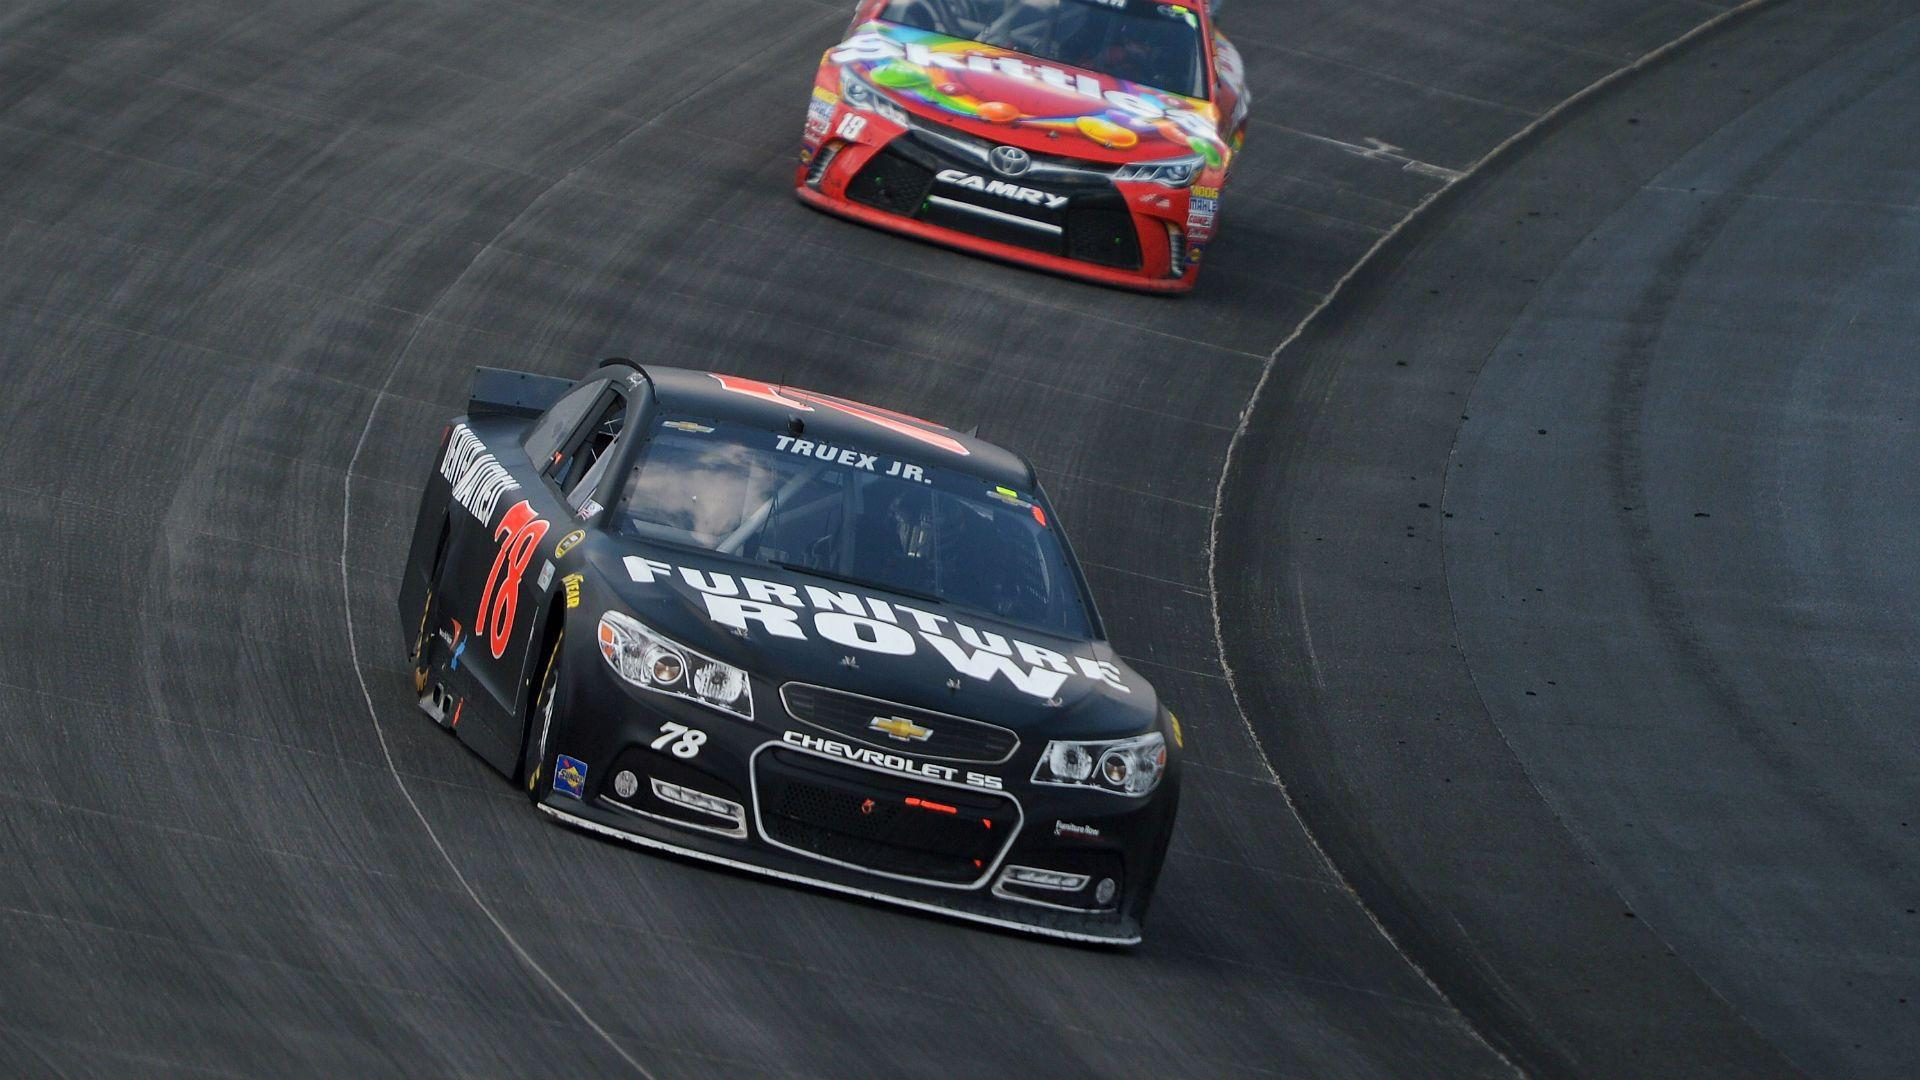 Third time is not the charm for Martin Truex Jr.